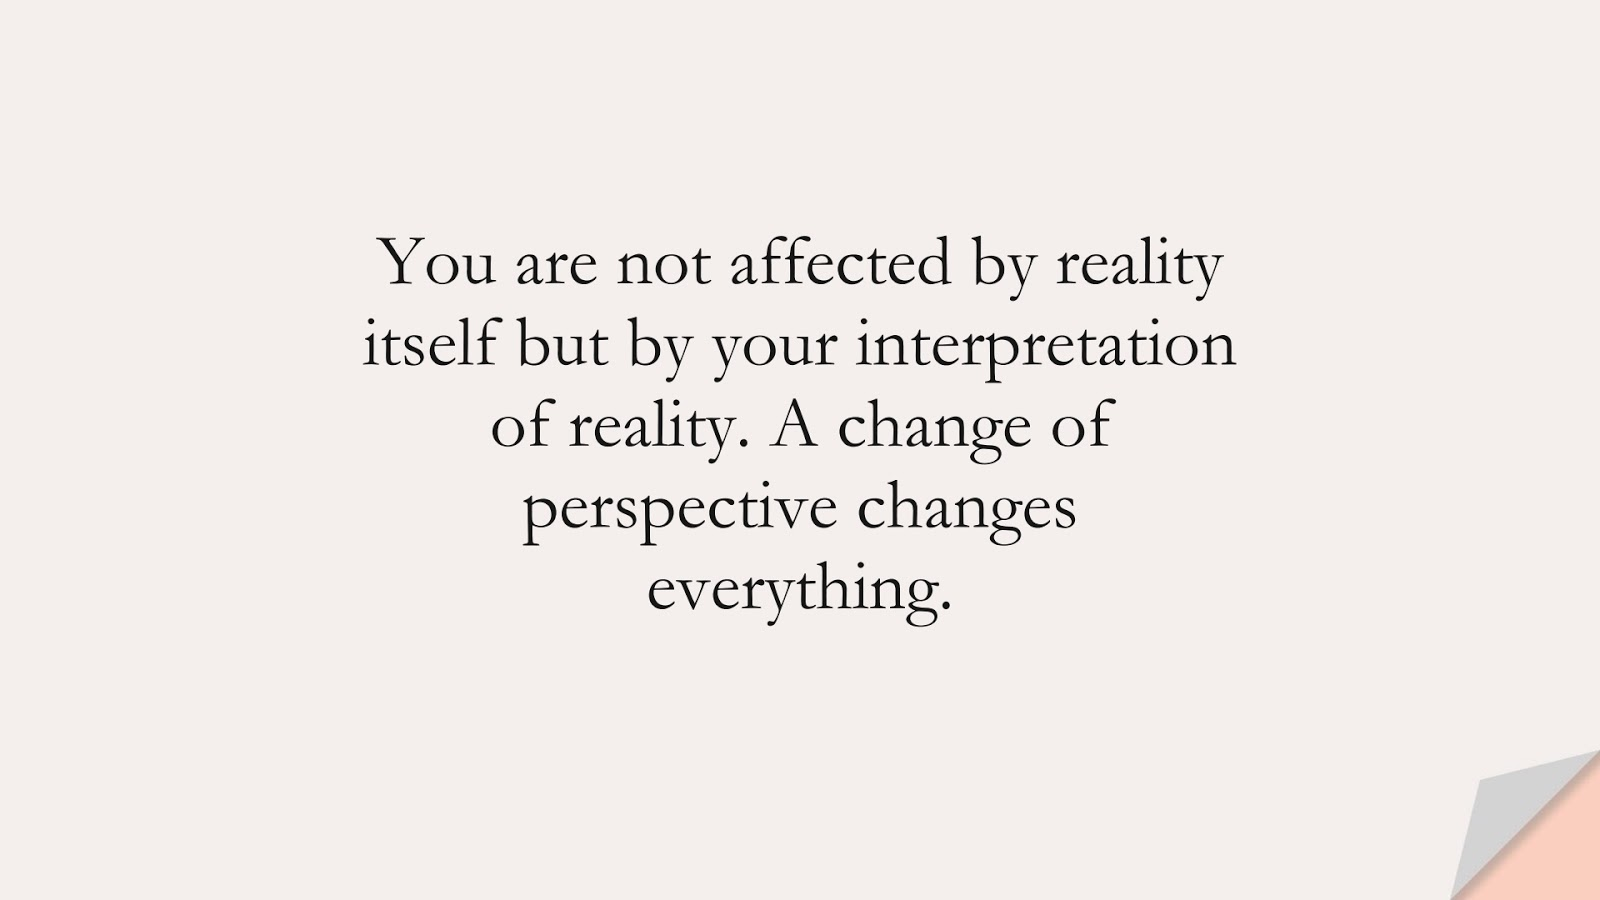 You are not affected by reality itself but by your interpretation of reality. A change of perspective changes everything.FALSE